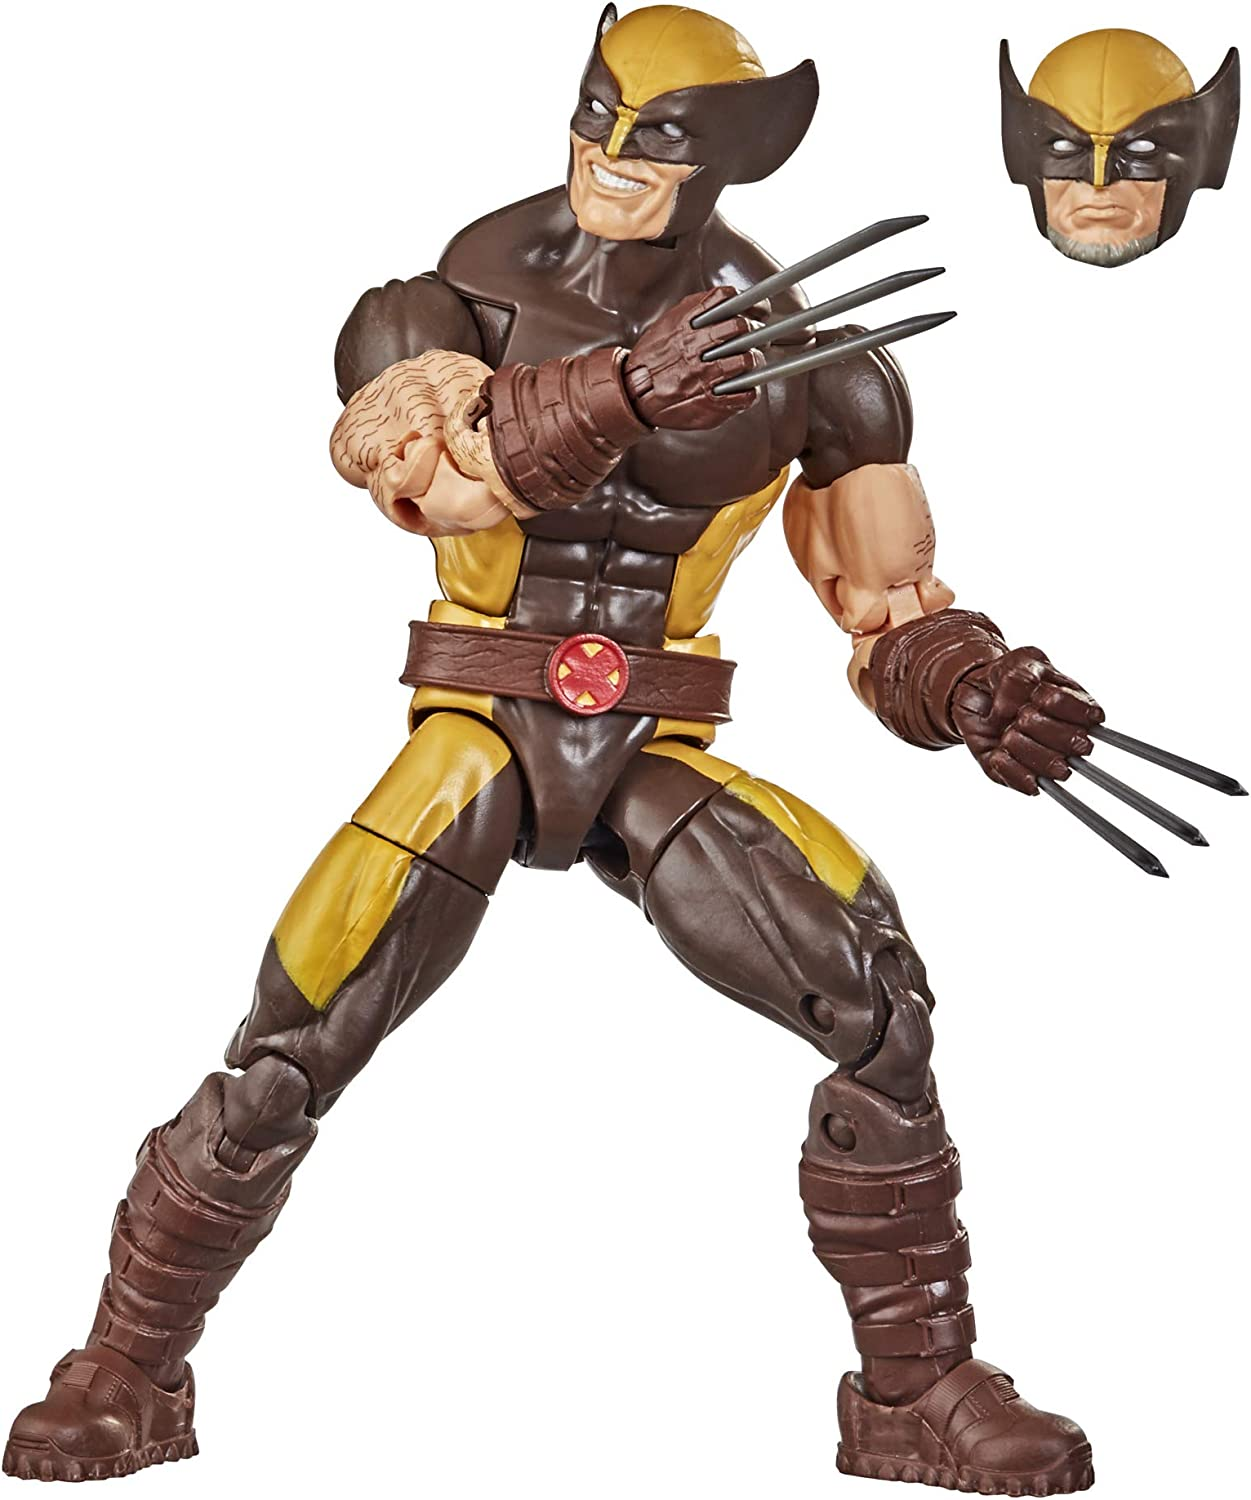 Amazon Com Hasbro Marvel Legends Series X Men 6 Inch Collectible Wolverine Action Figure Toy Premium Detail And Accessory Ages 4 And Up Toys Games